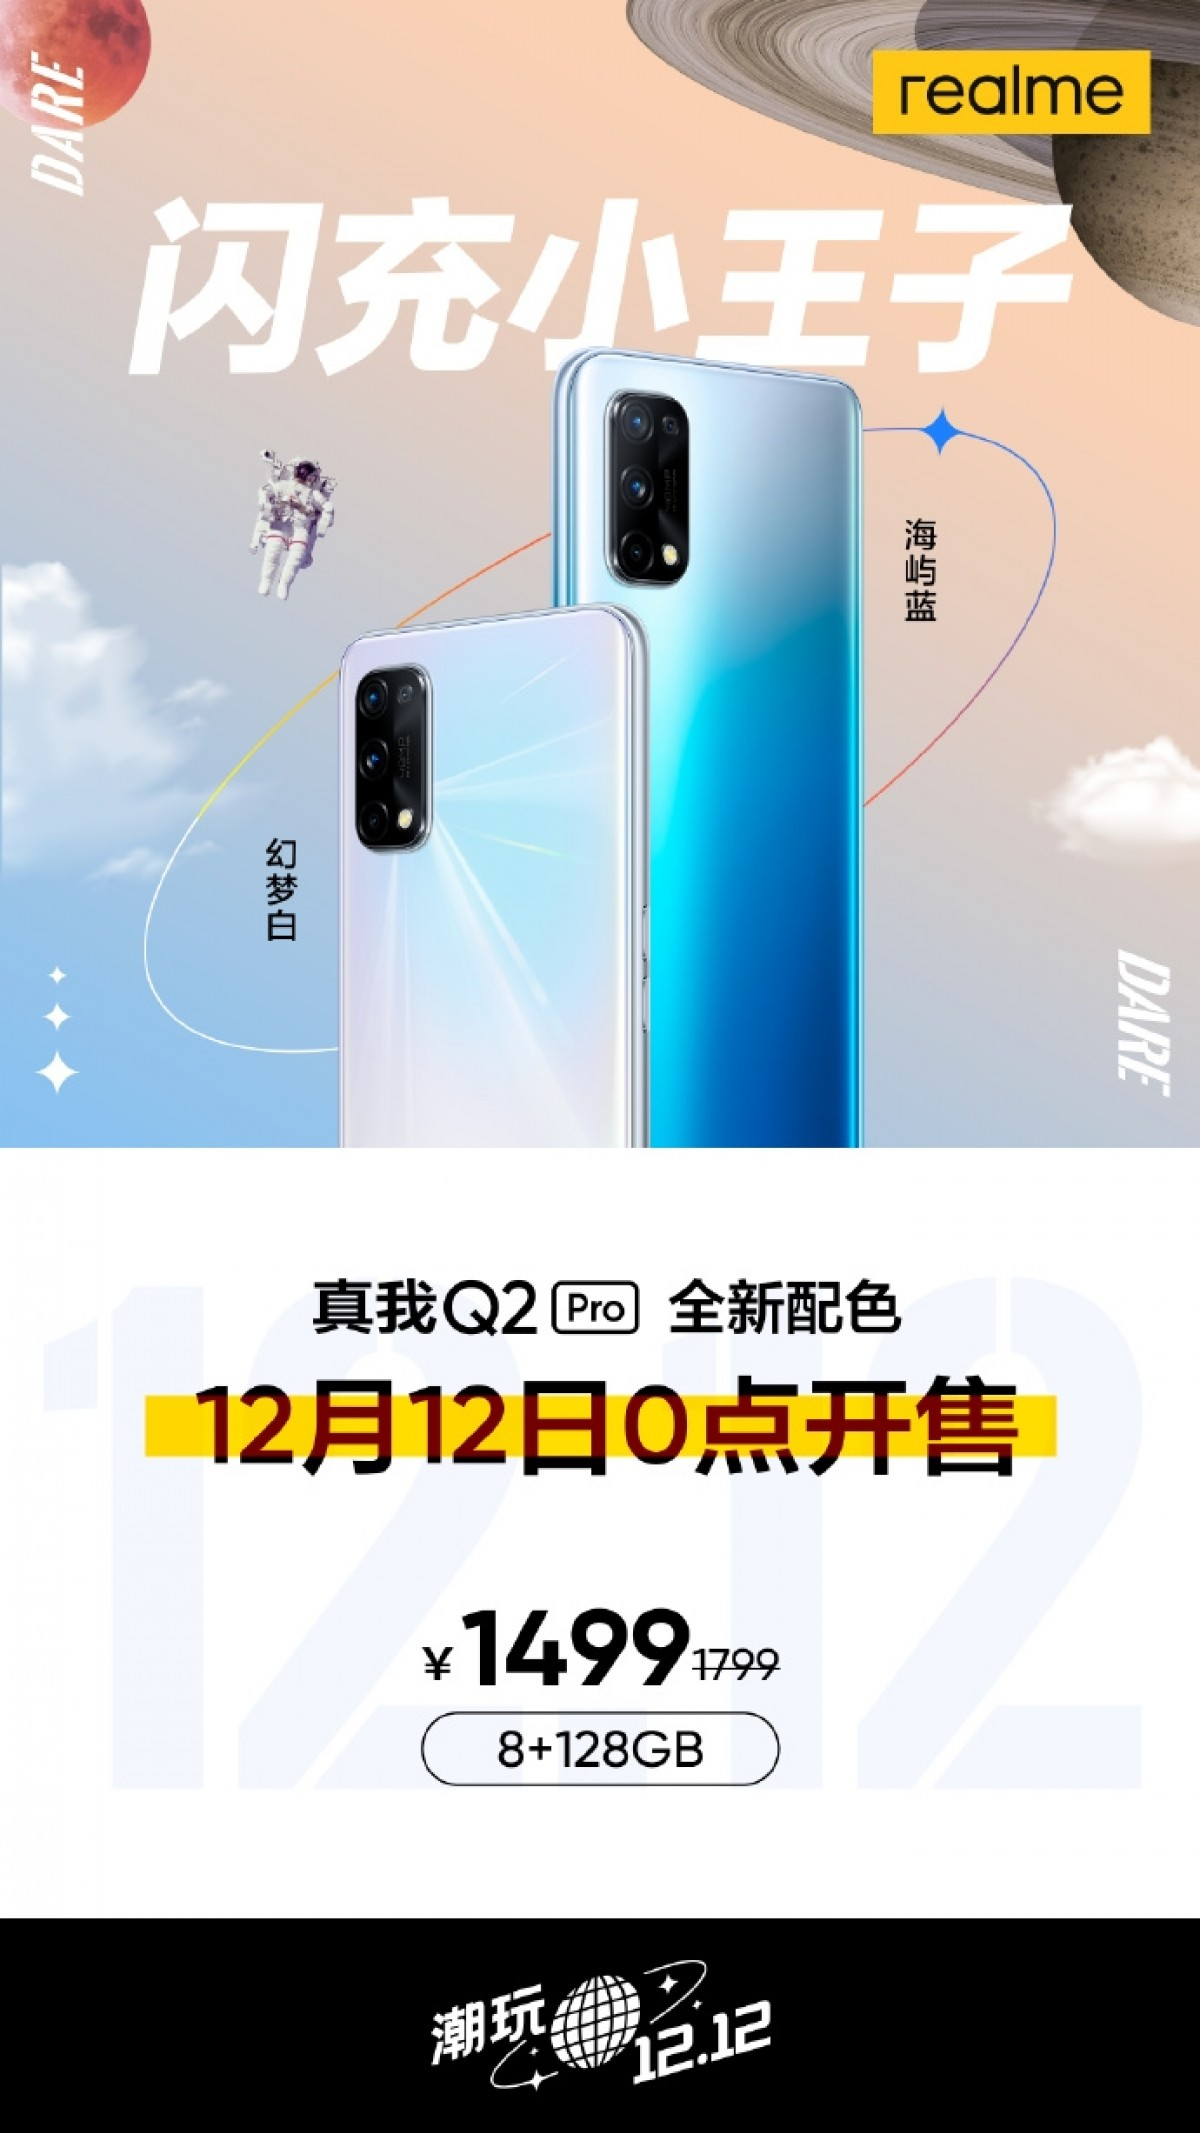 Realme Q2 Pro arrives in two more colors – Blue and regular White